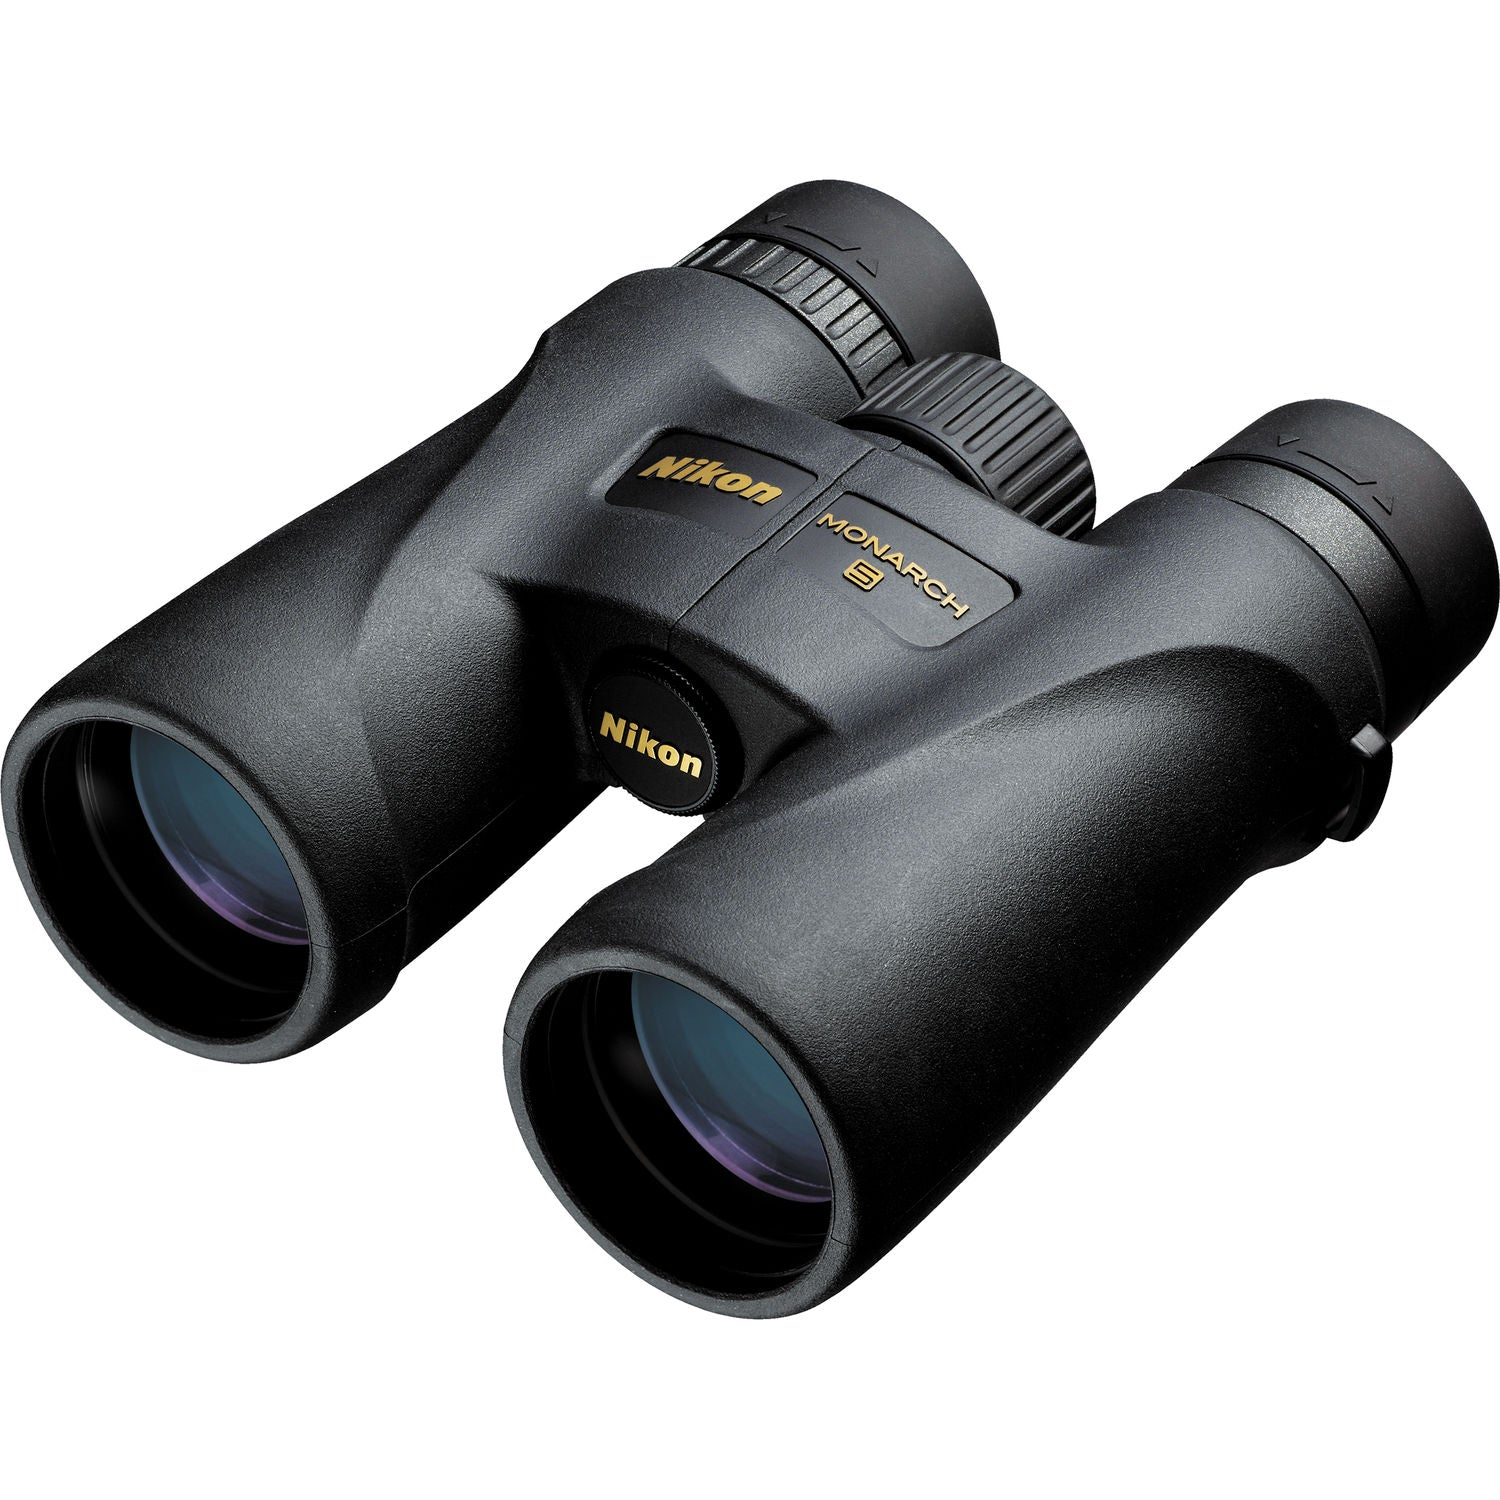 Nikon 8x42 Monarch 5 Binocular (Black)